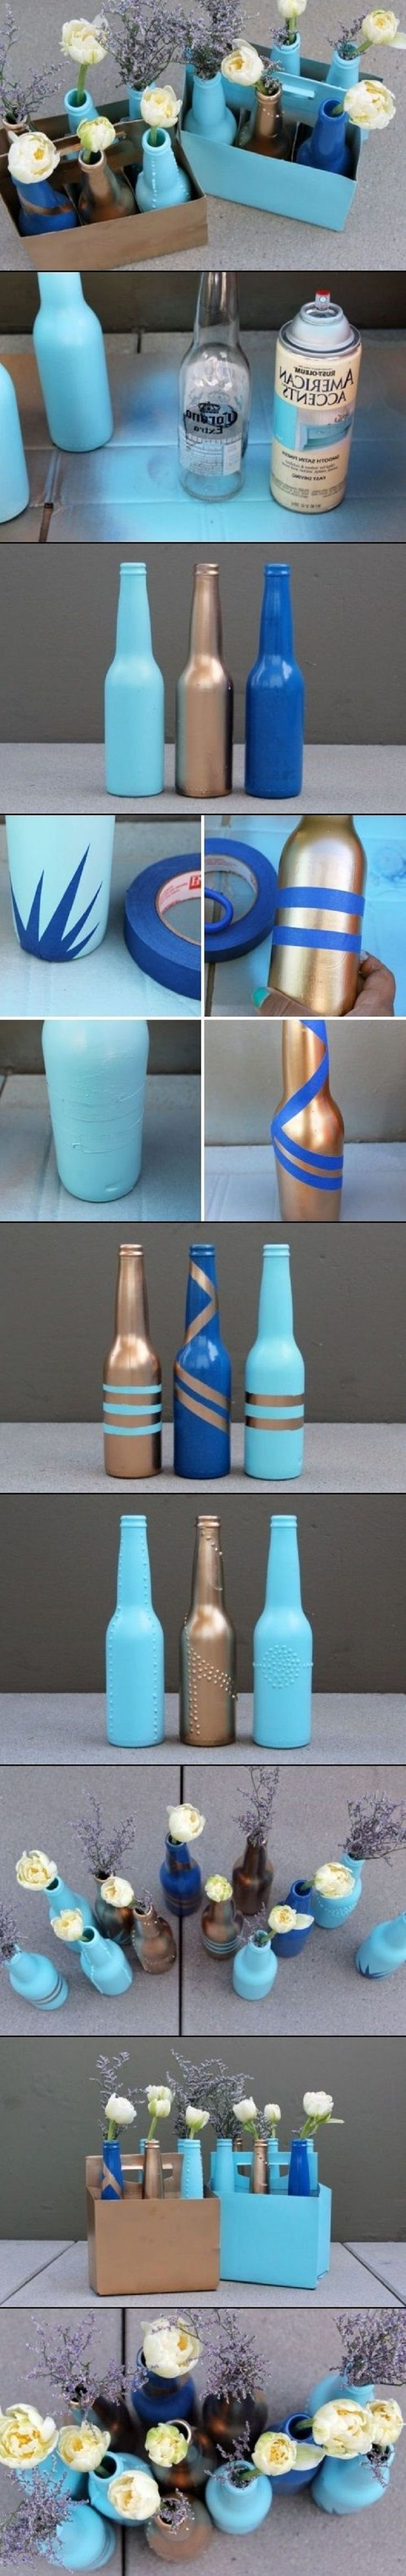 23+ Fascinating Ways To Reuse Glass Bottles Into DIY Projects Creatively usefuldiyprojects.com ideas (13)